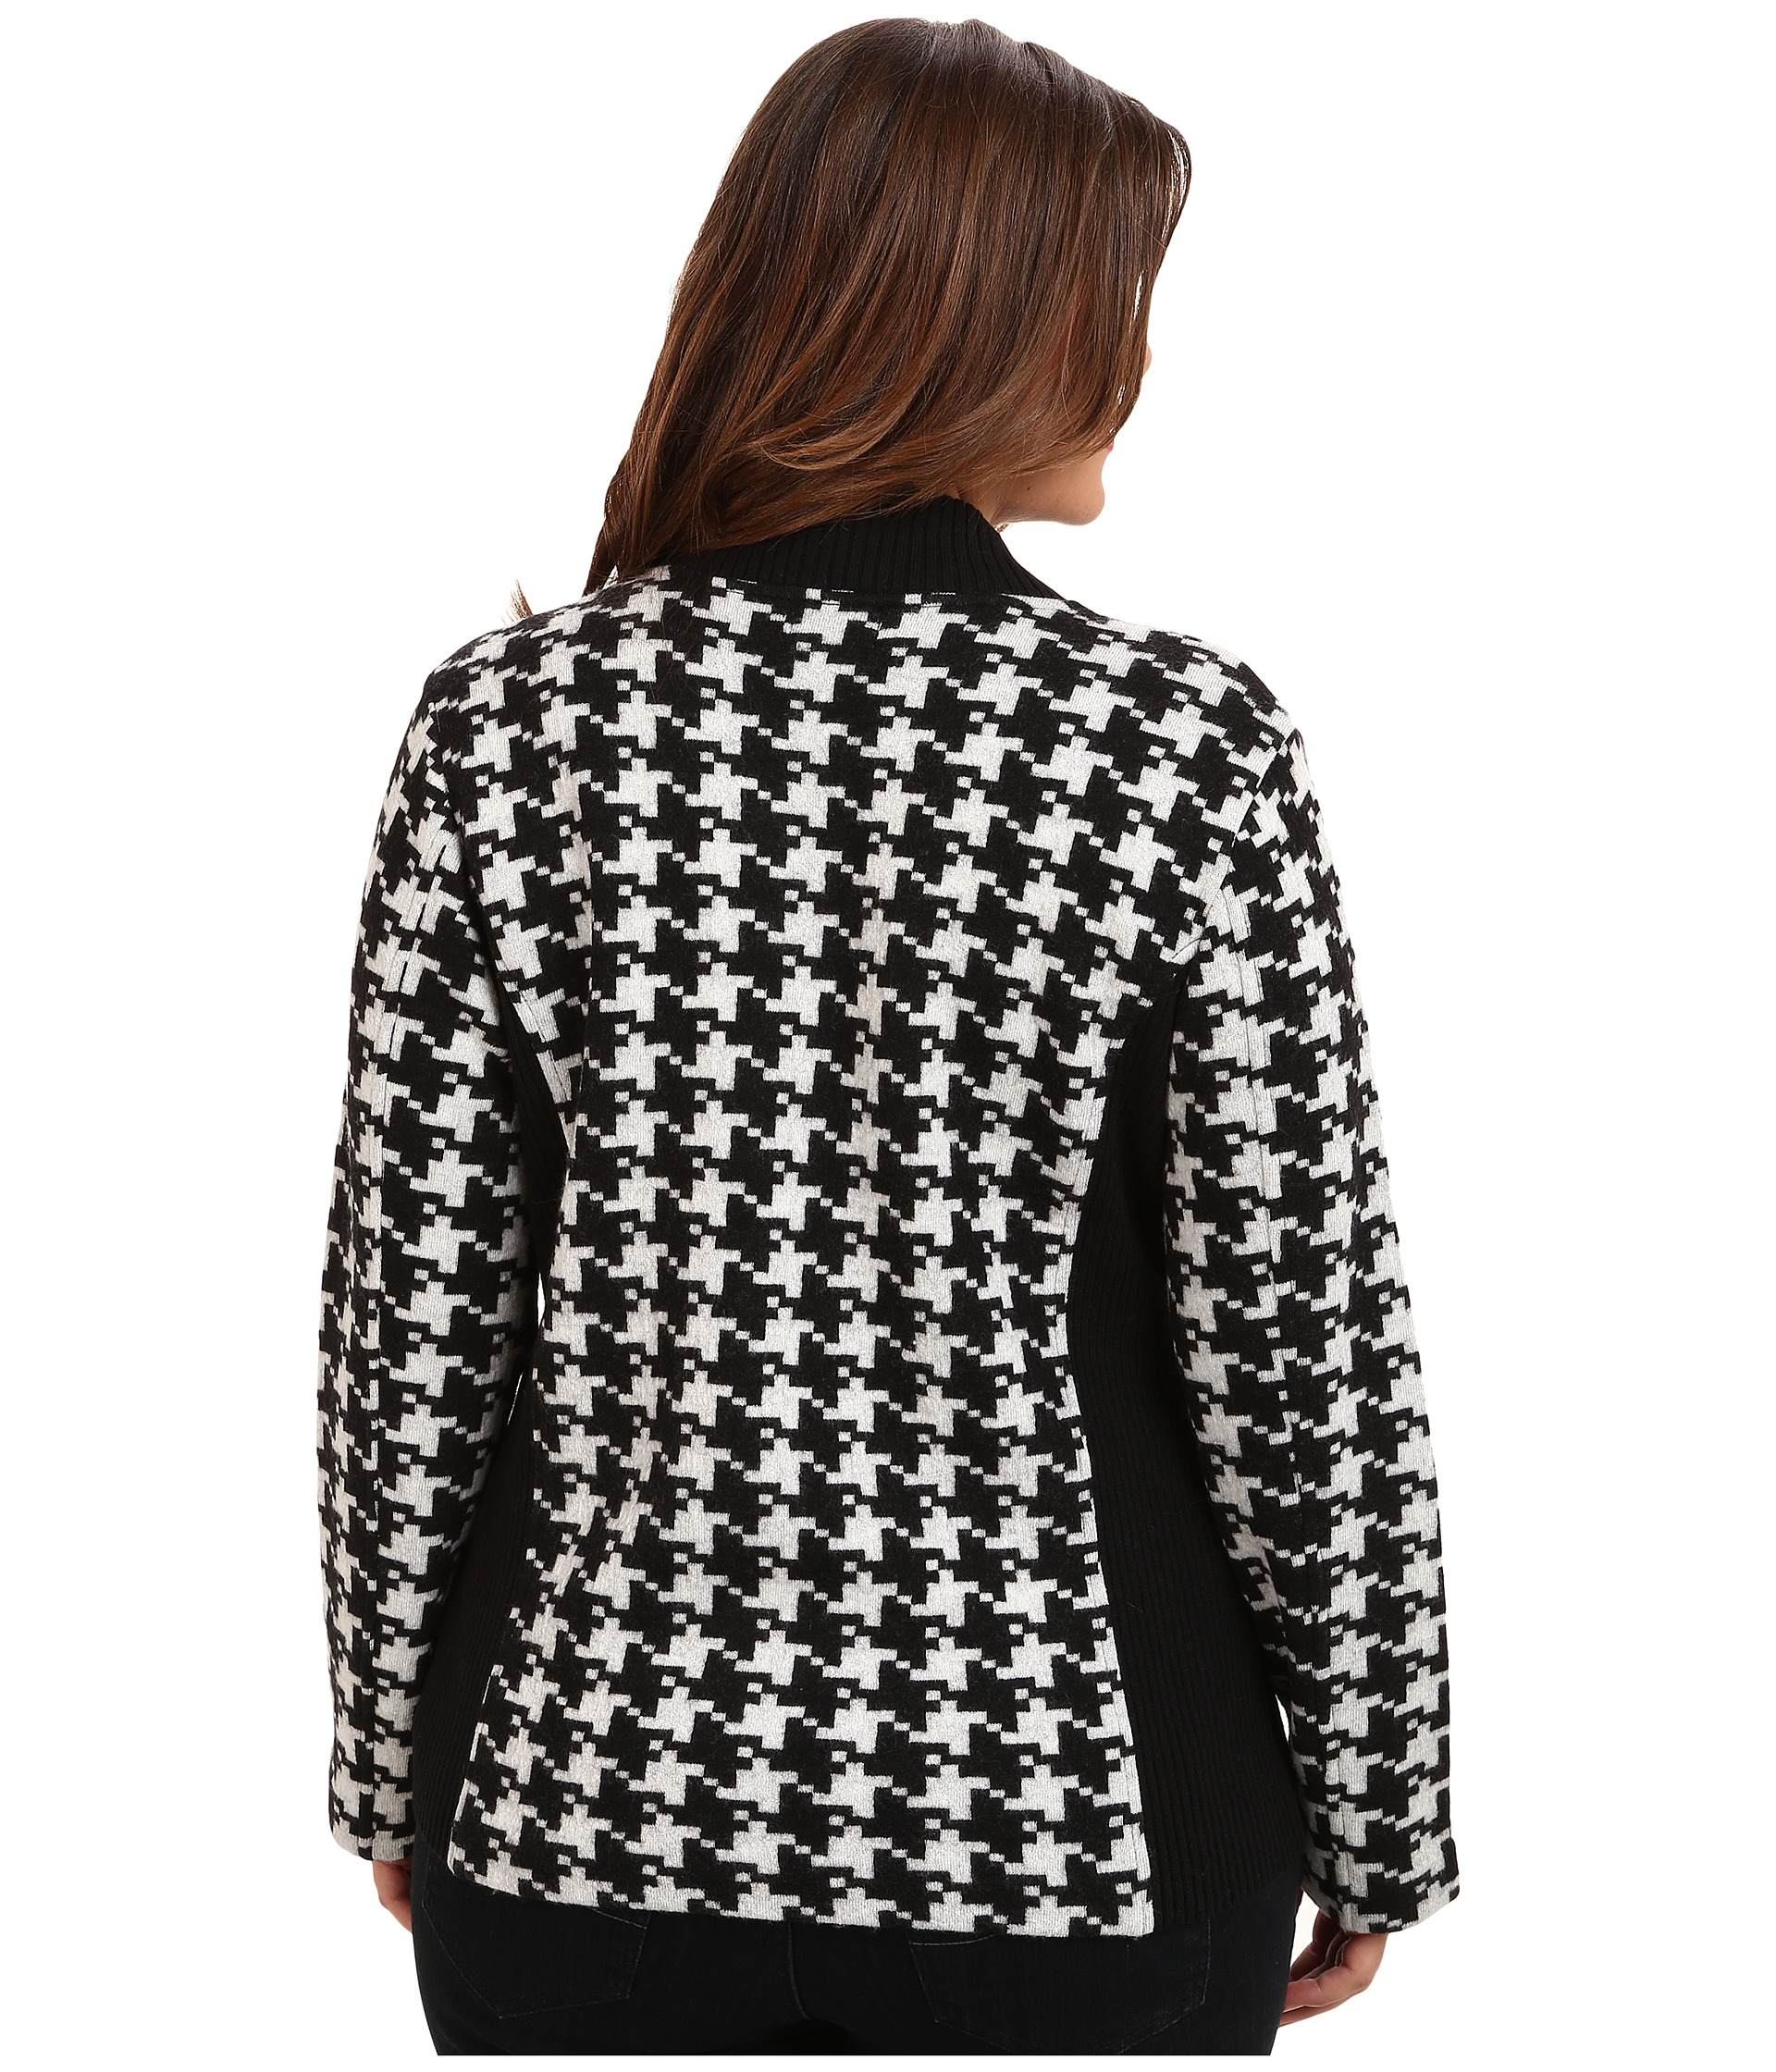 Enhance your winter wardrobe selection with this Women's Plus-Size Houndstooth Coat. It features long sleeves for sheltering out cold, nippy wind. It also has a wide collar and a double-breasted button front closure to keep you warm. This coat includes two zipper closure chest pockets for quick access to personal belongings and two side entry pockets.